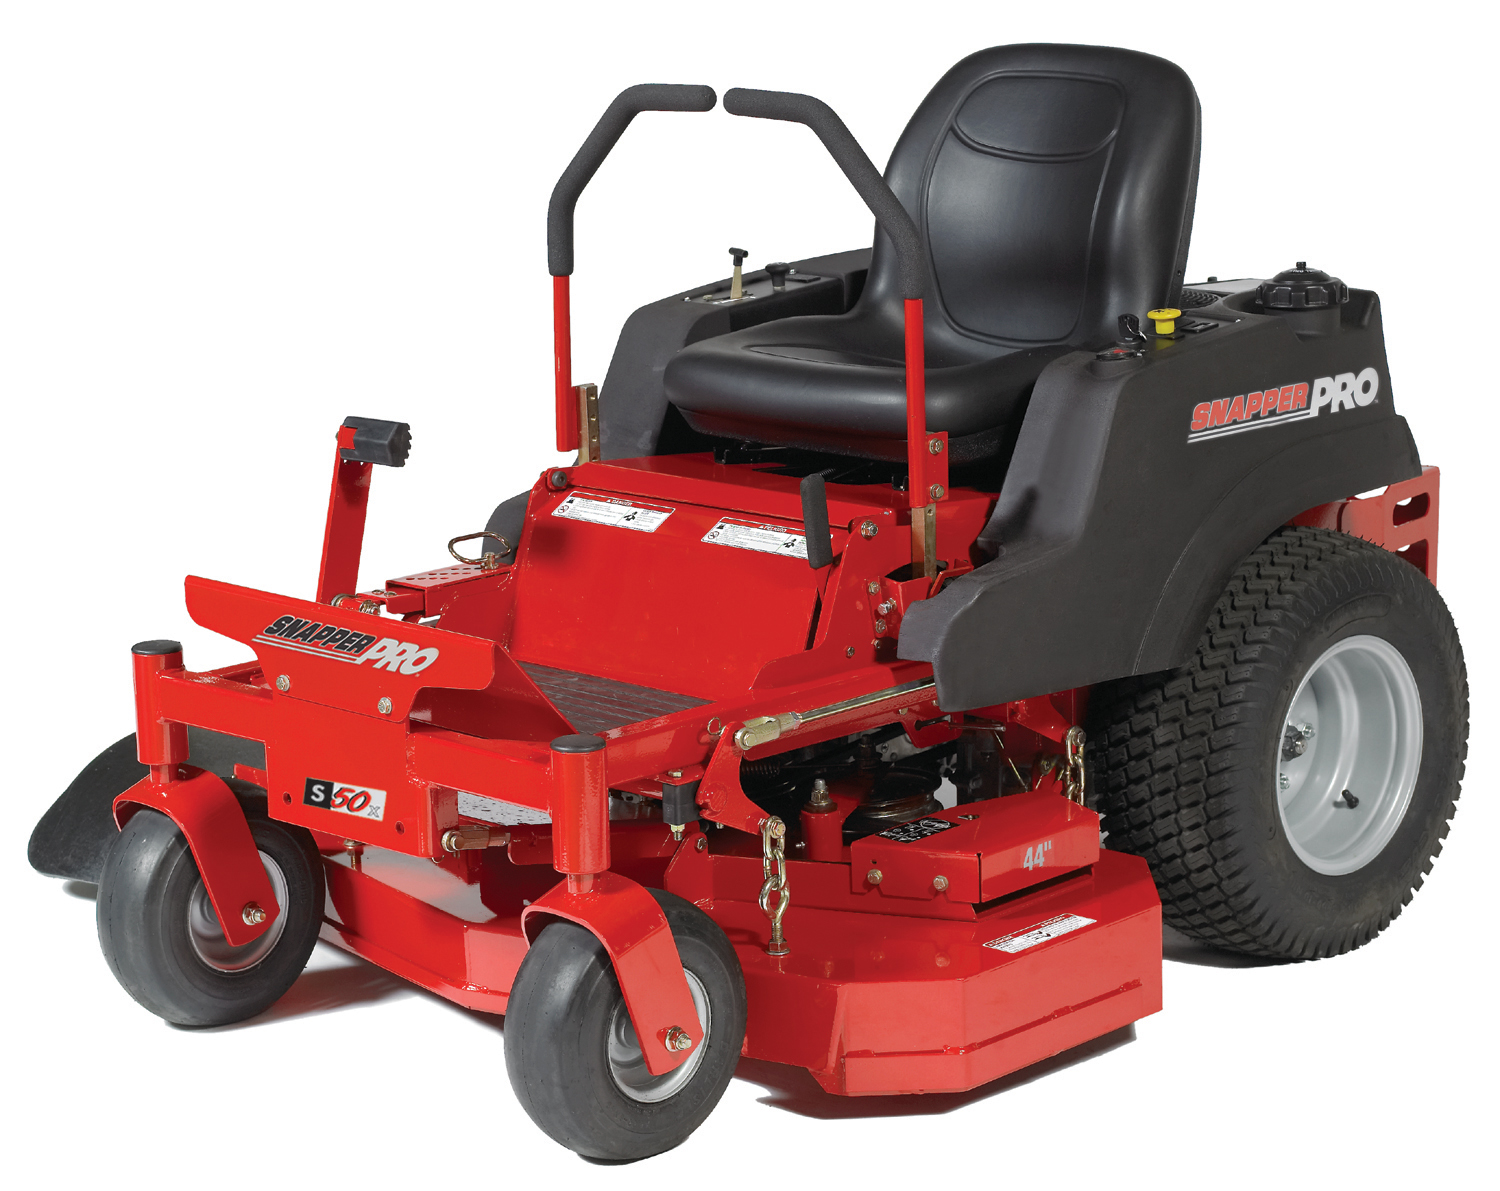 Snapper S50x Zero Turn Radius Commercial Lawn Mower